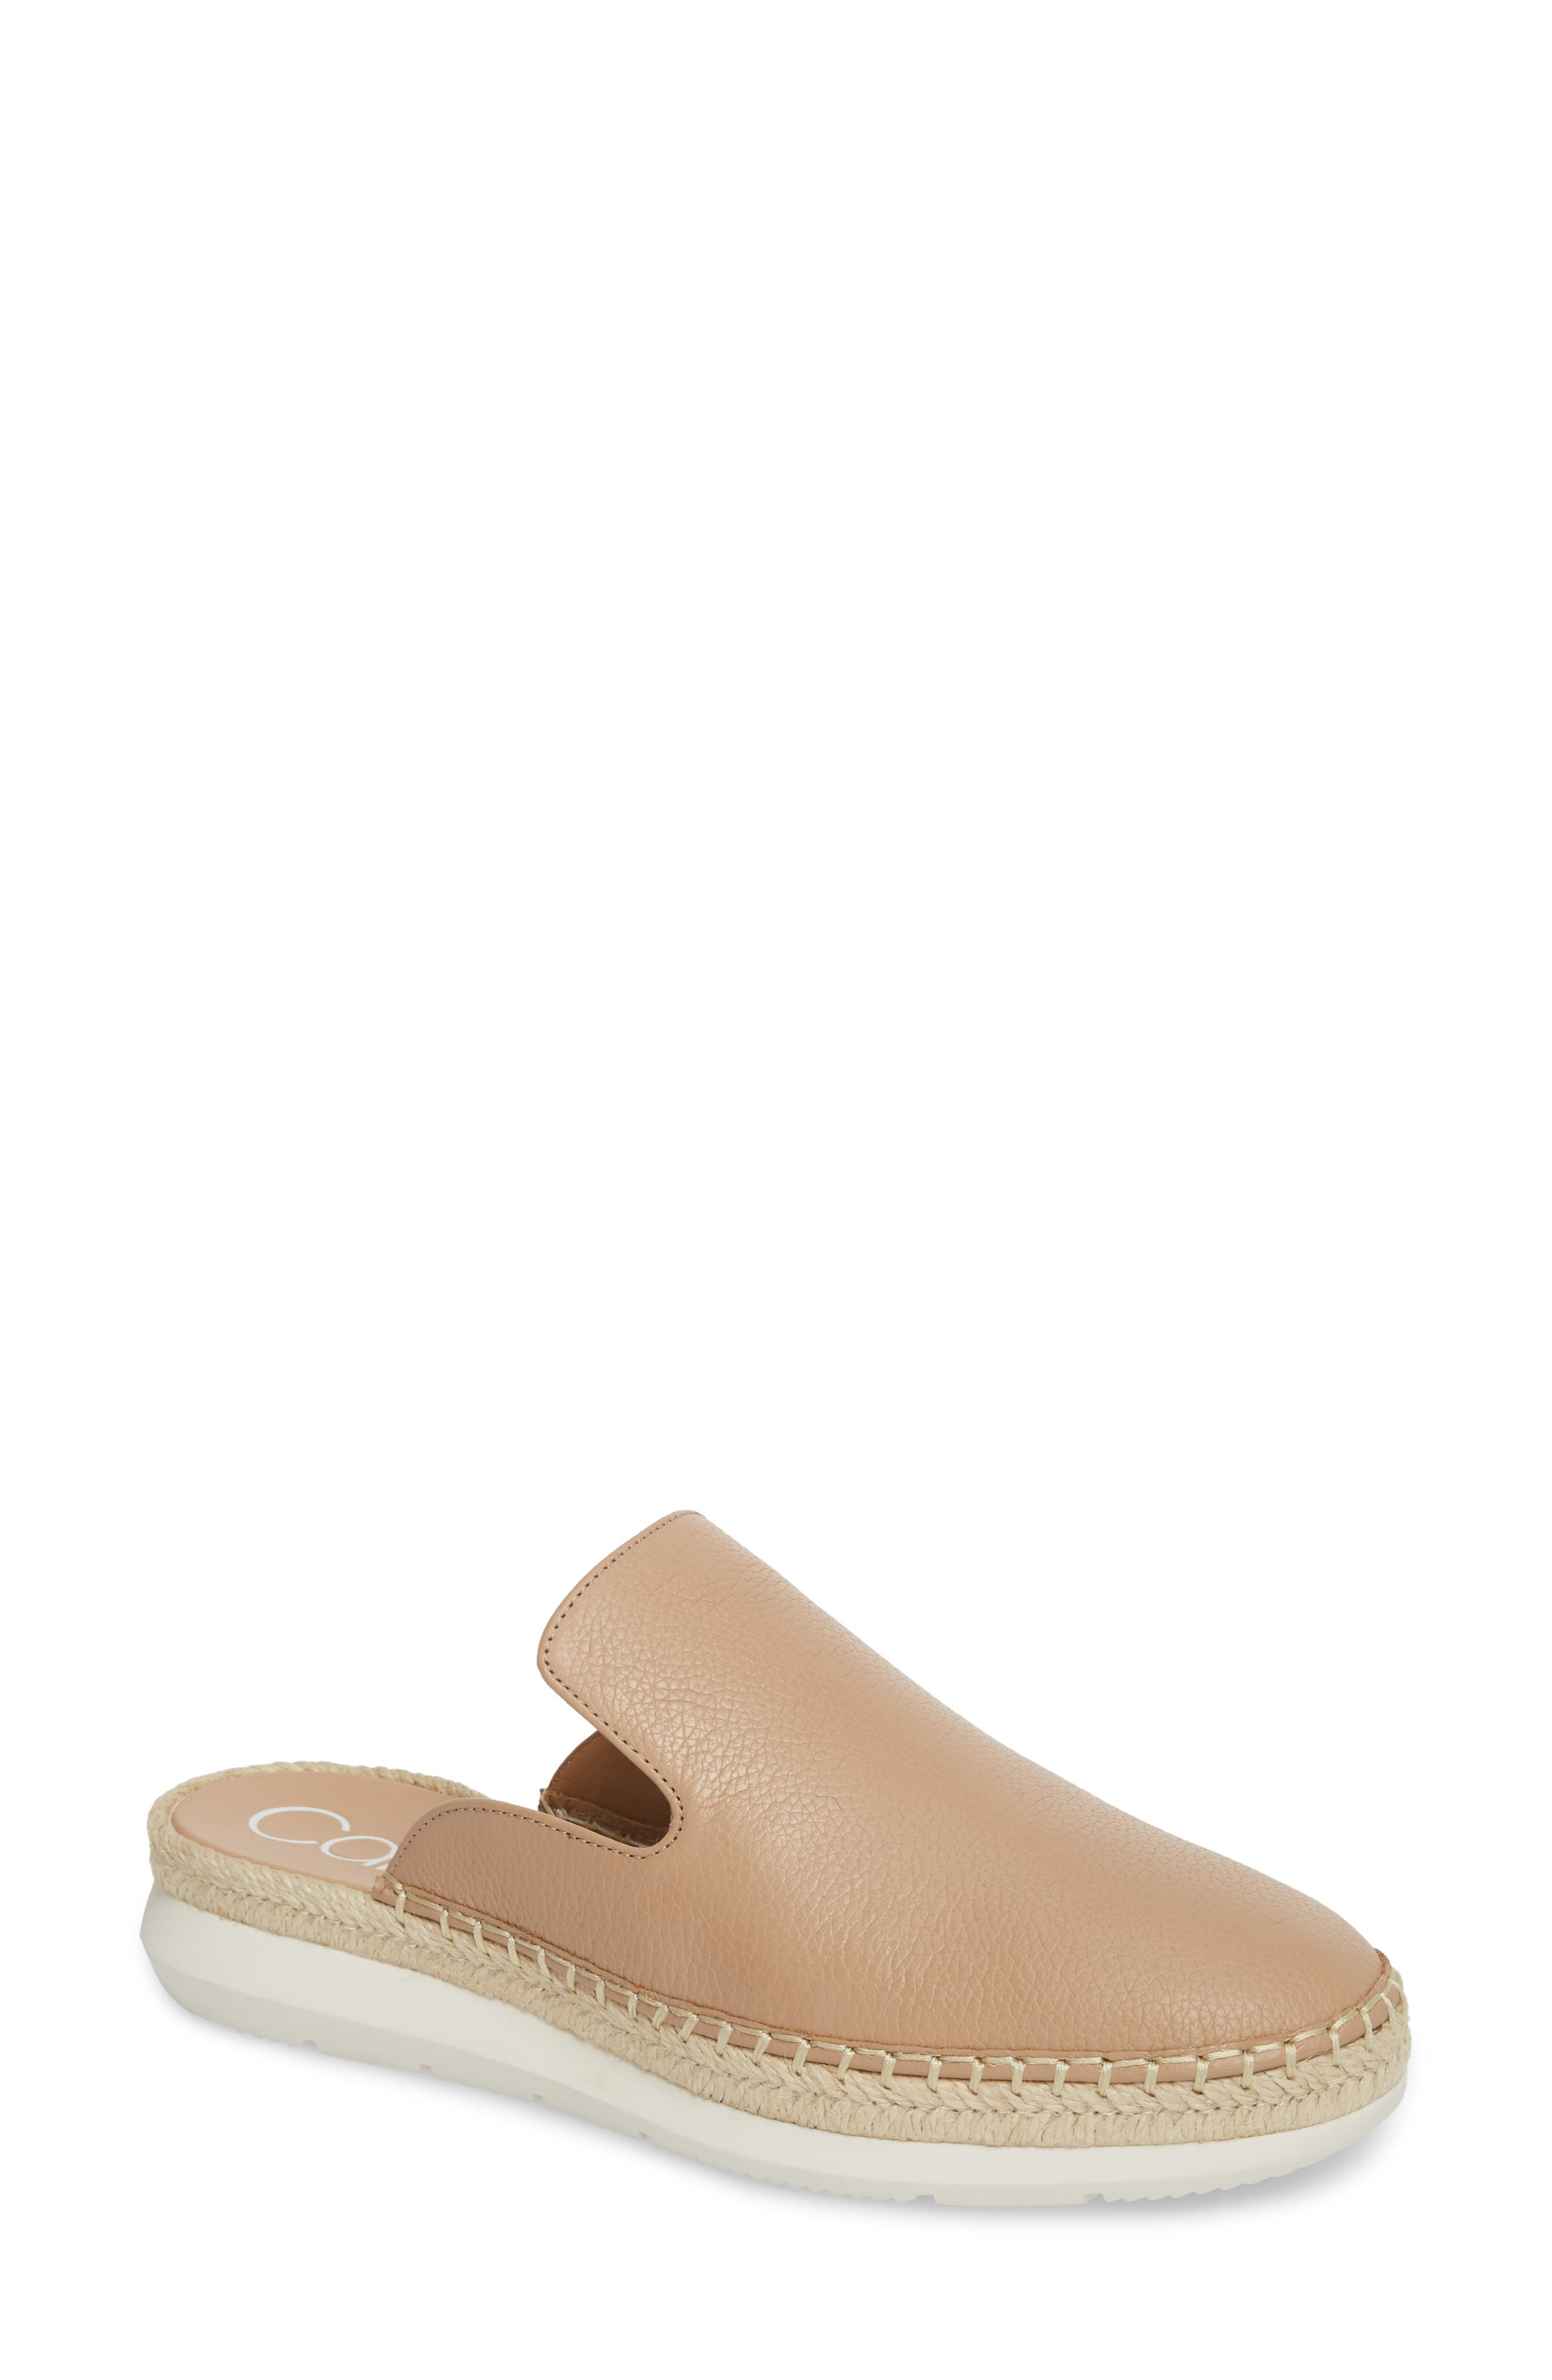 Verie Espadrille Loafer Mule,                         Main,                         color, Desert Sand Pebble Leather